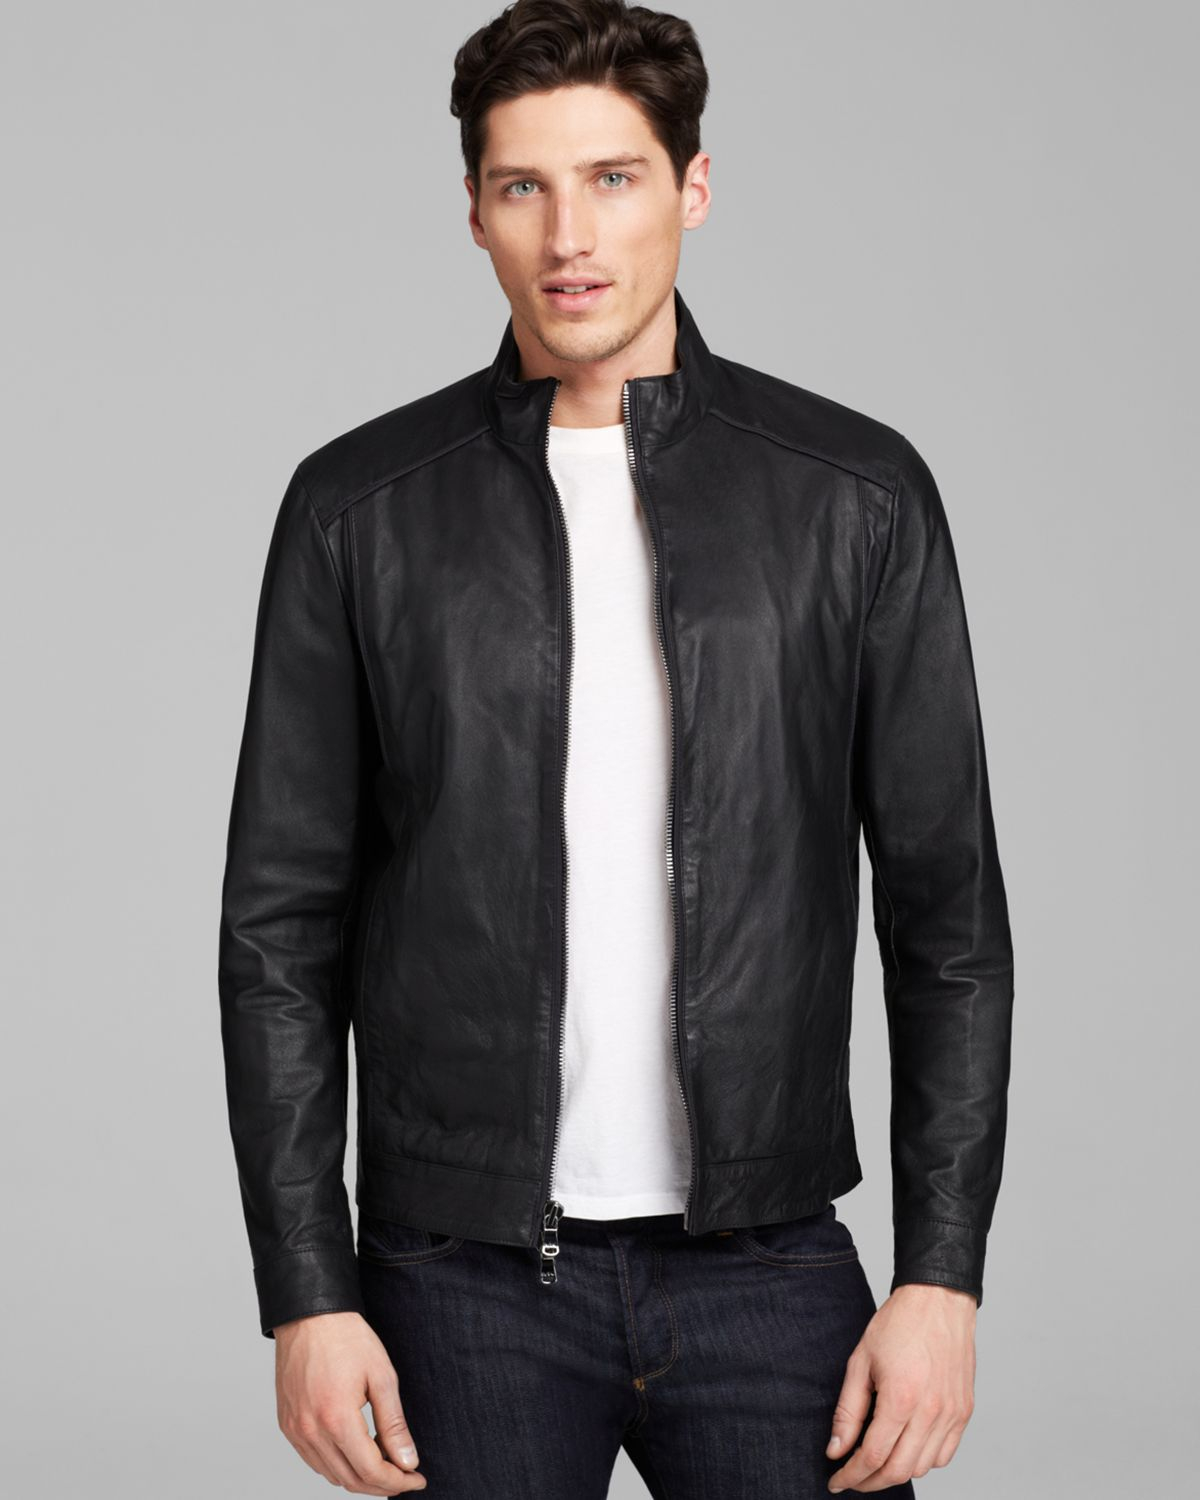 Men S Suits On Pinterest: Michael Kors Piped Leather Jacket In Black For Men